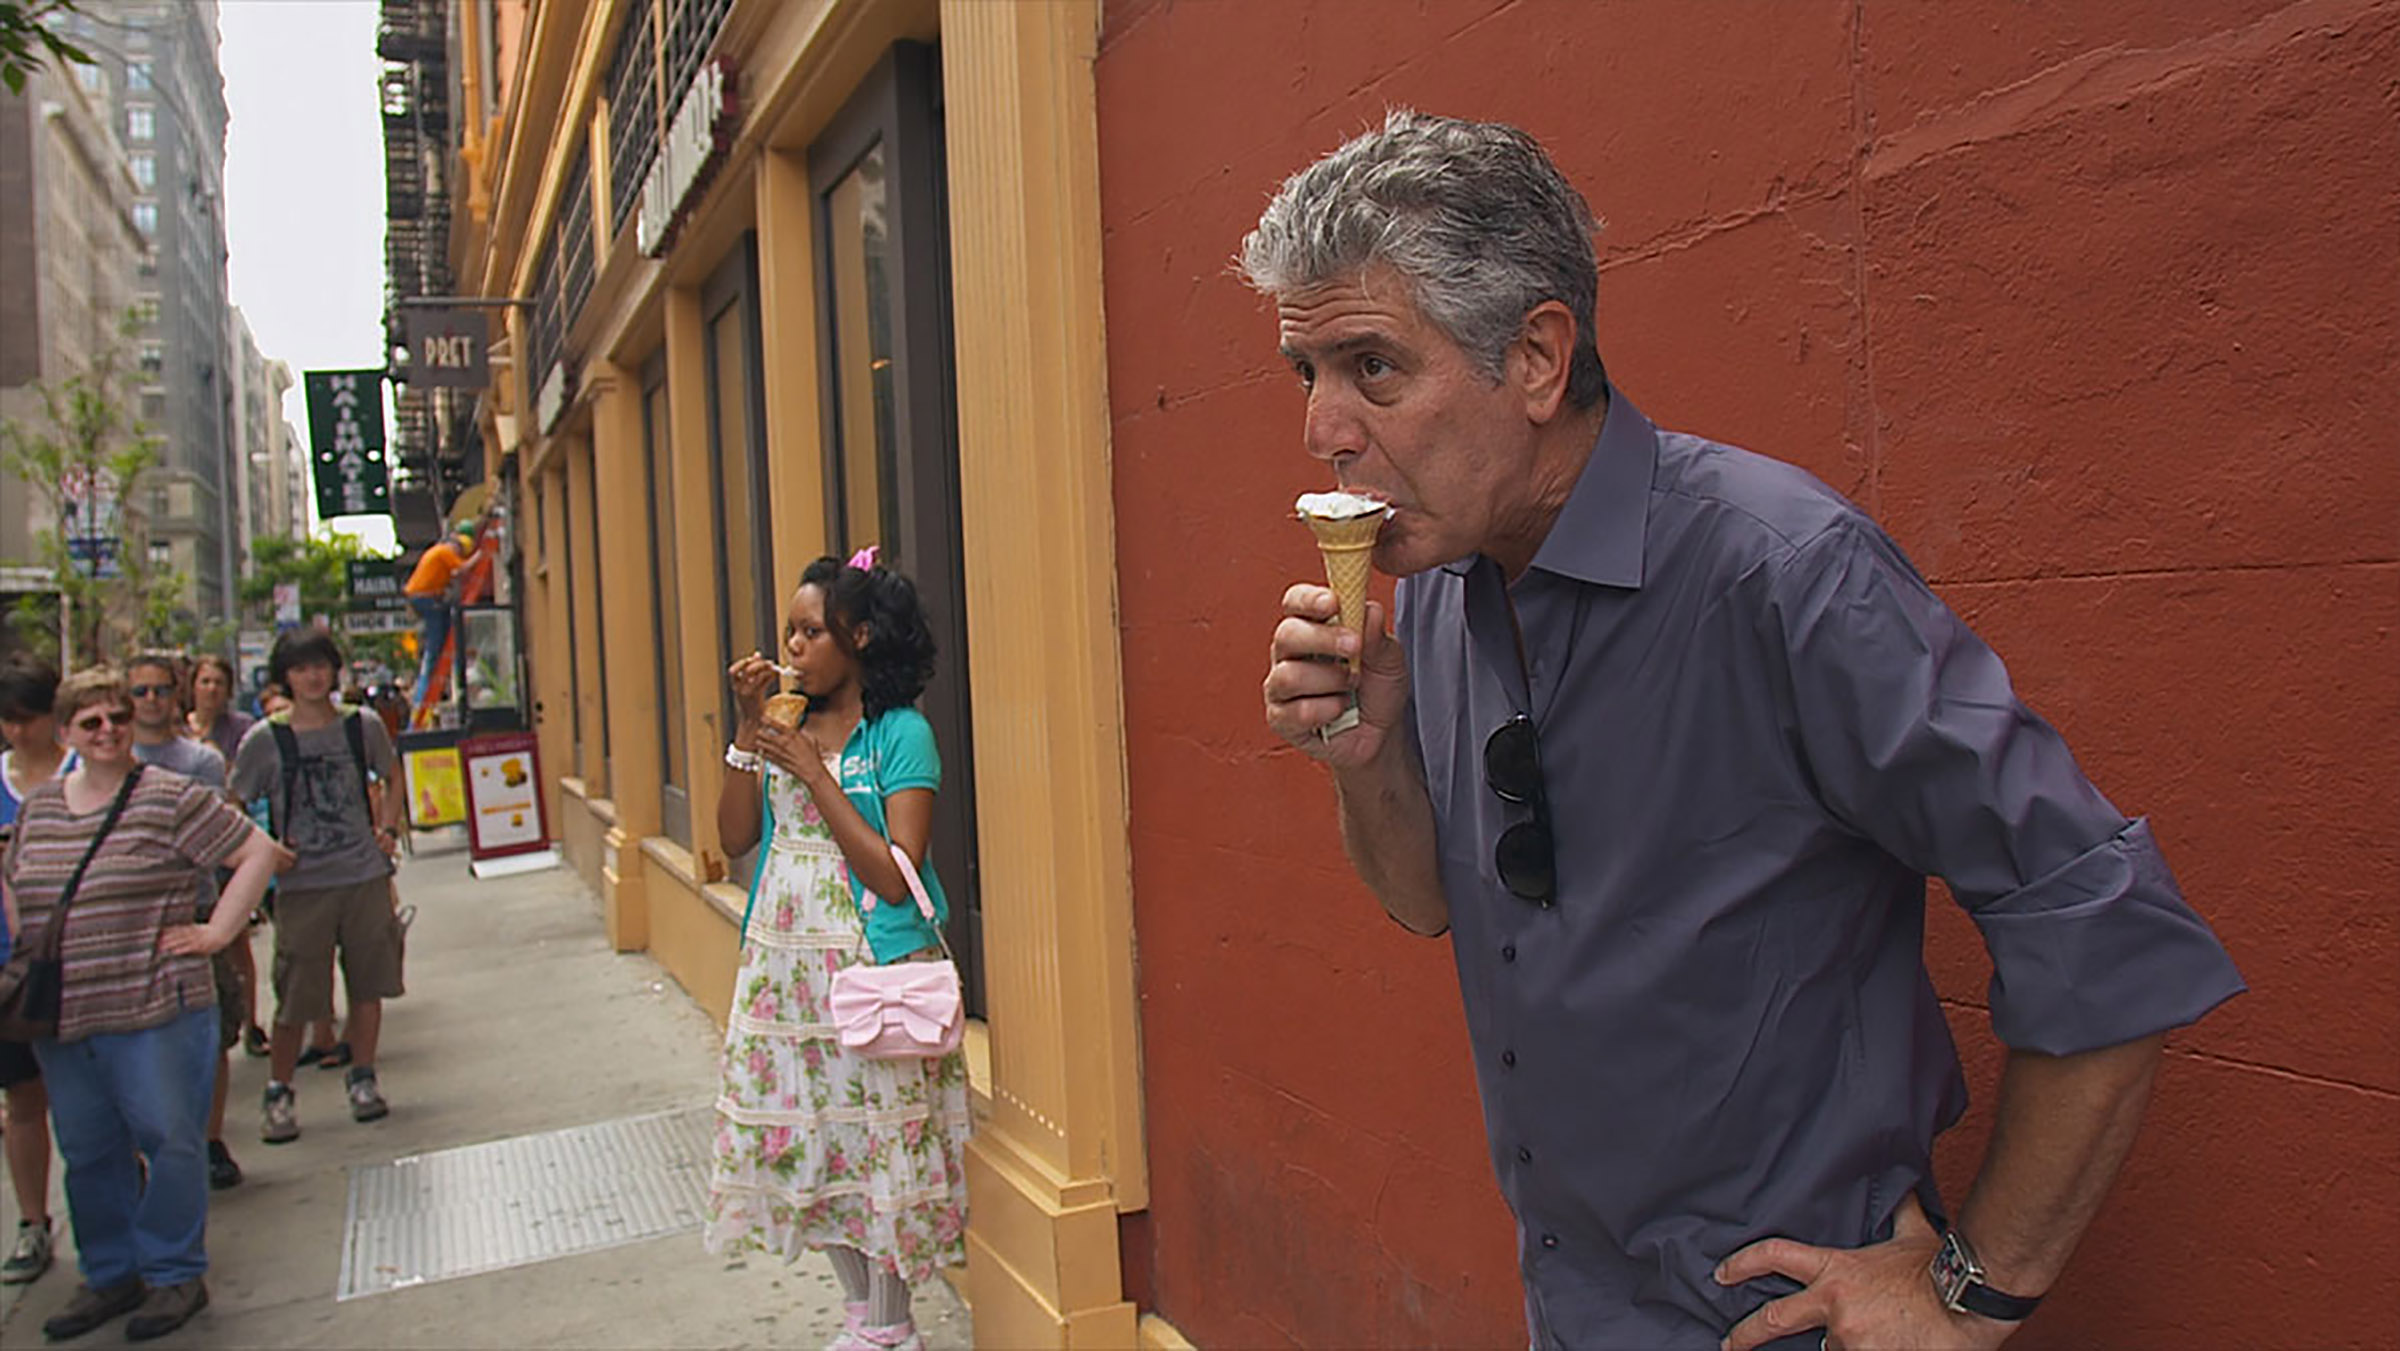 bostonglobe.com - Hiawatha Bray - After Bourdain documentary sounds alarm on voice fakery, tech firms weigh in on ethics, security